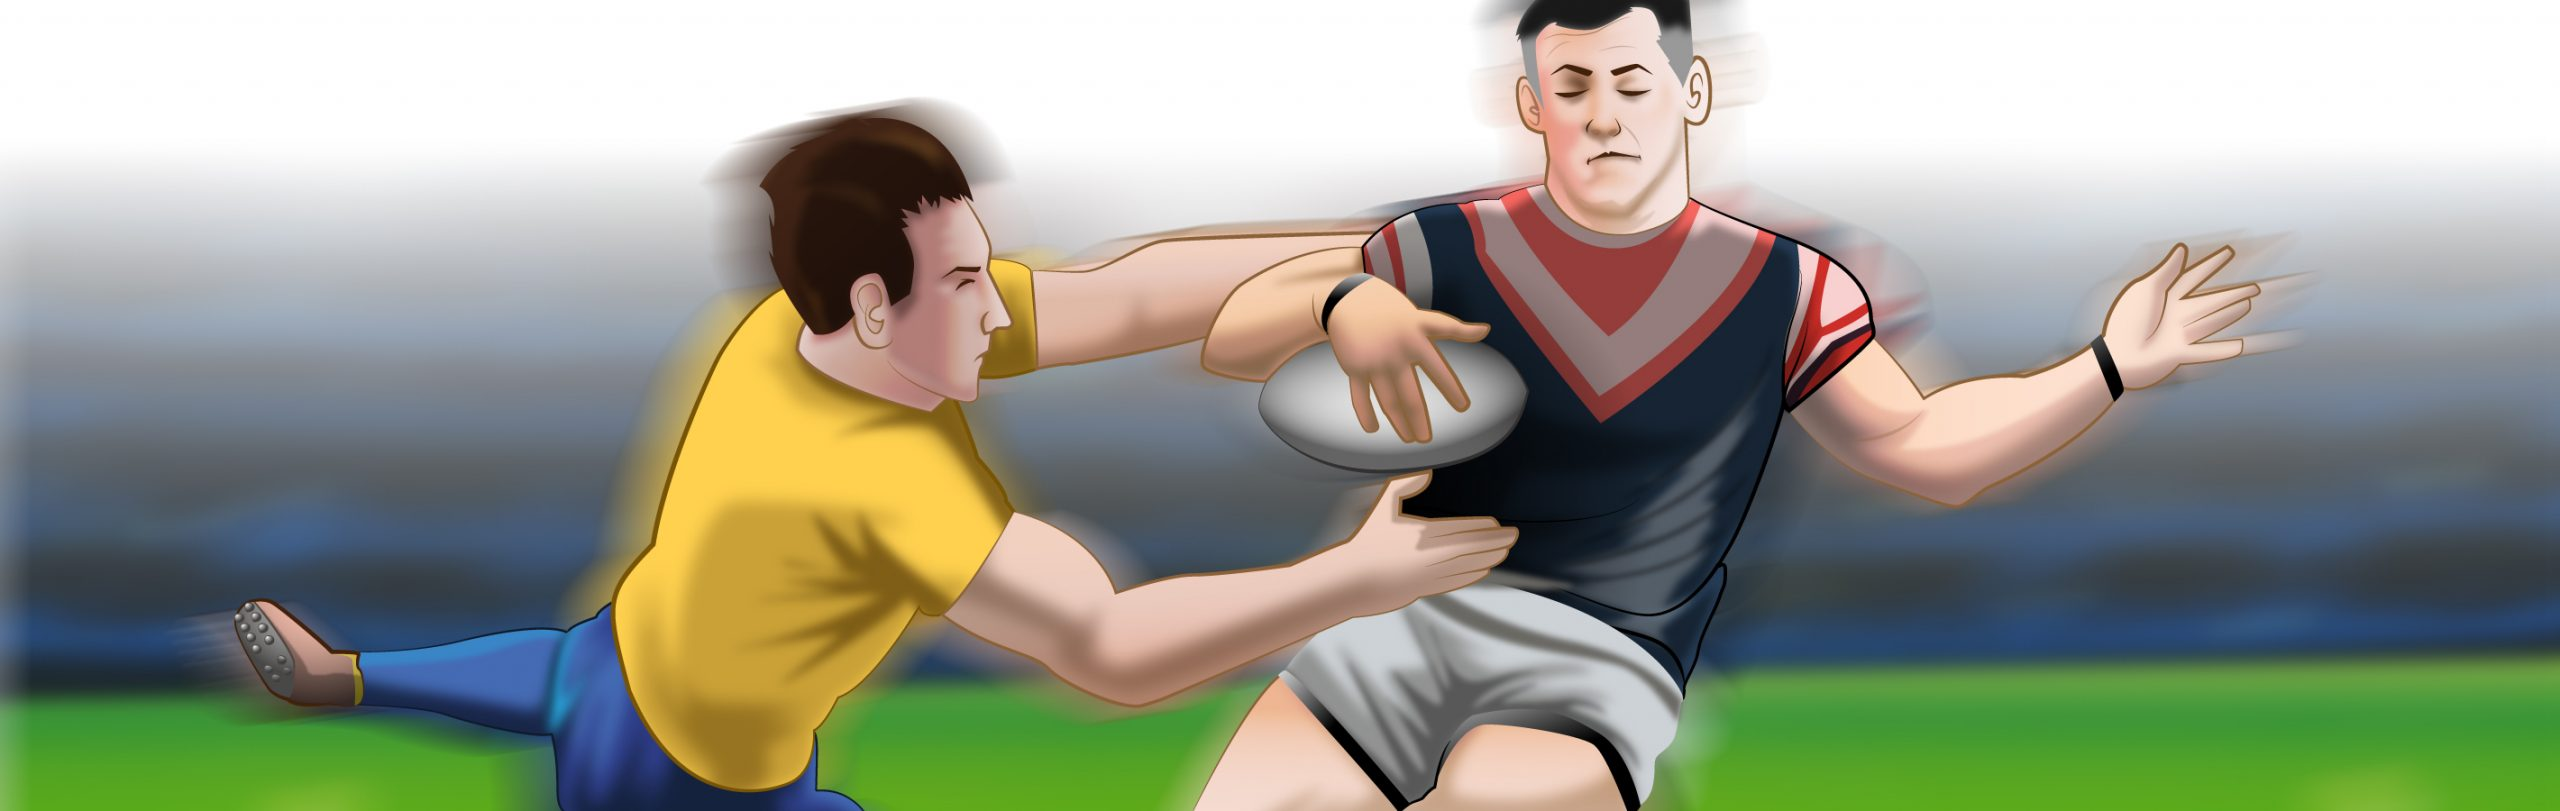 Rugby union betting explained variance what does w/o mean in betting